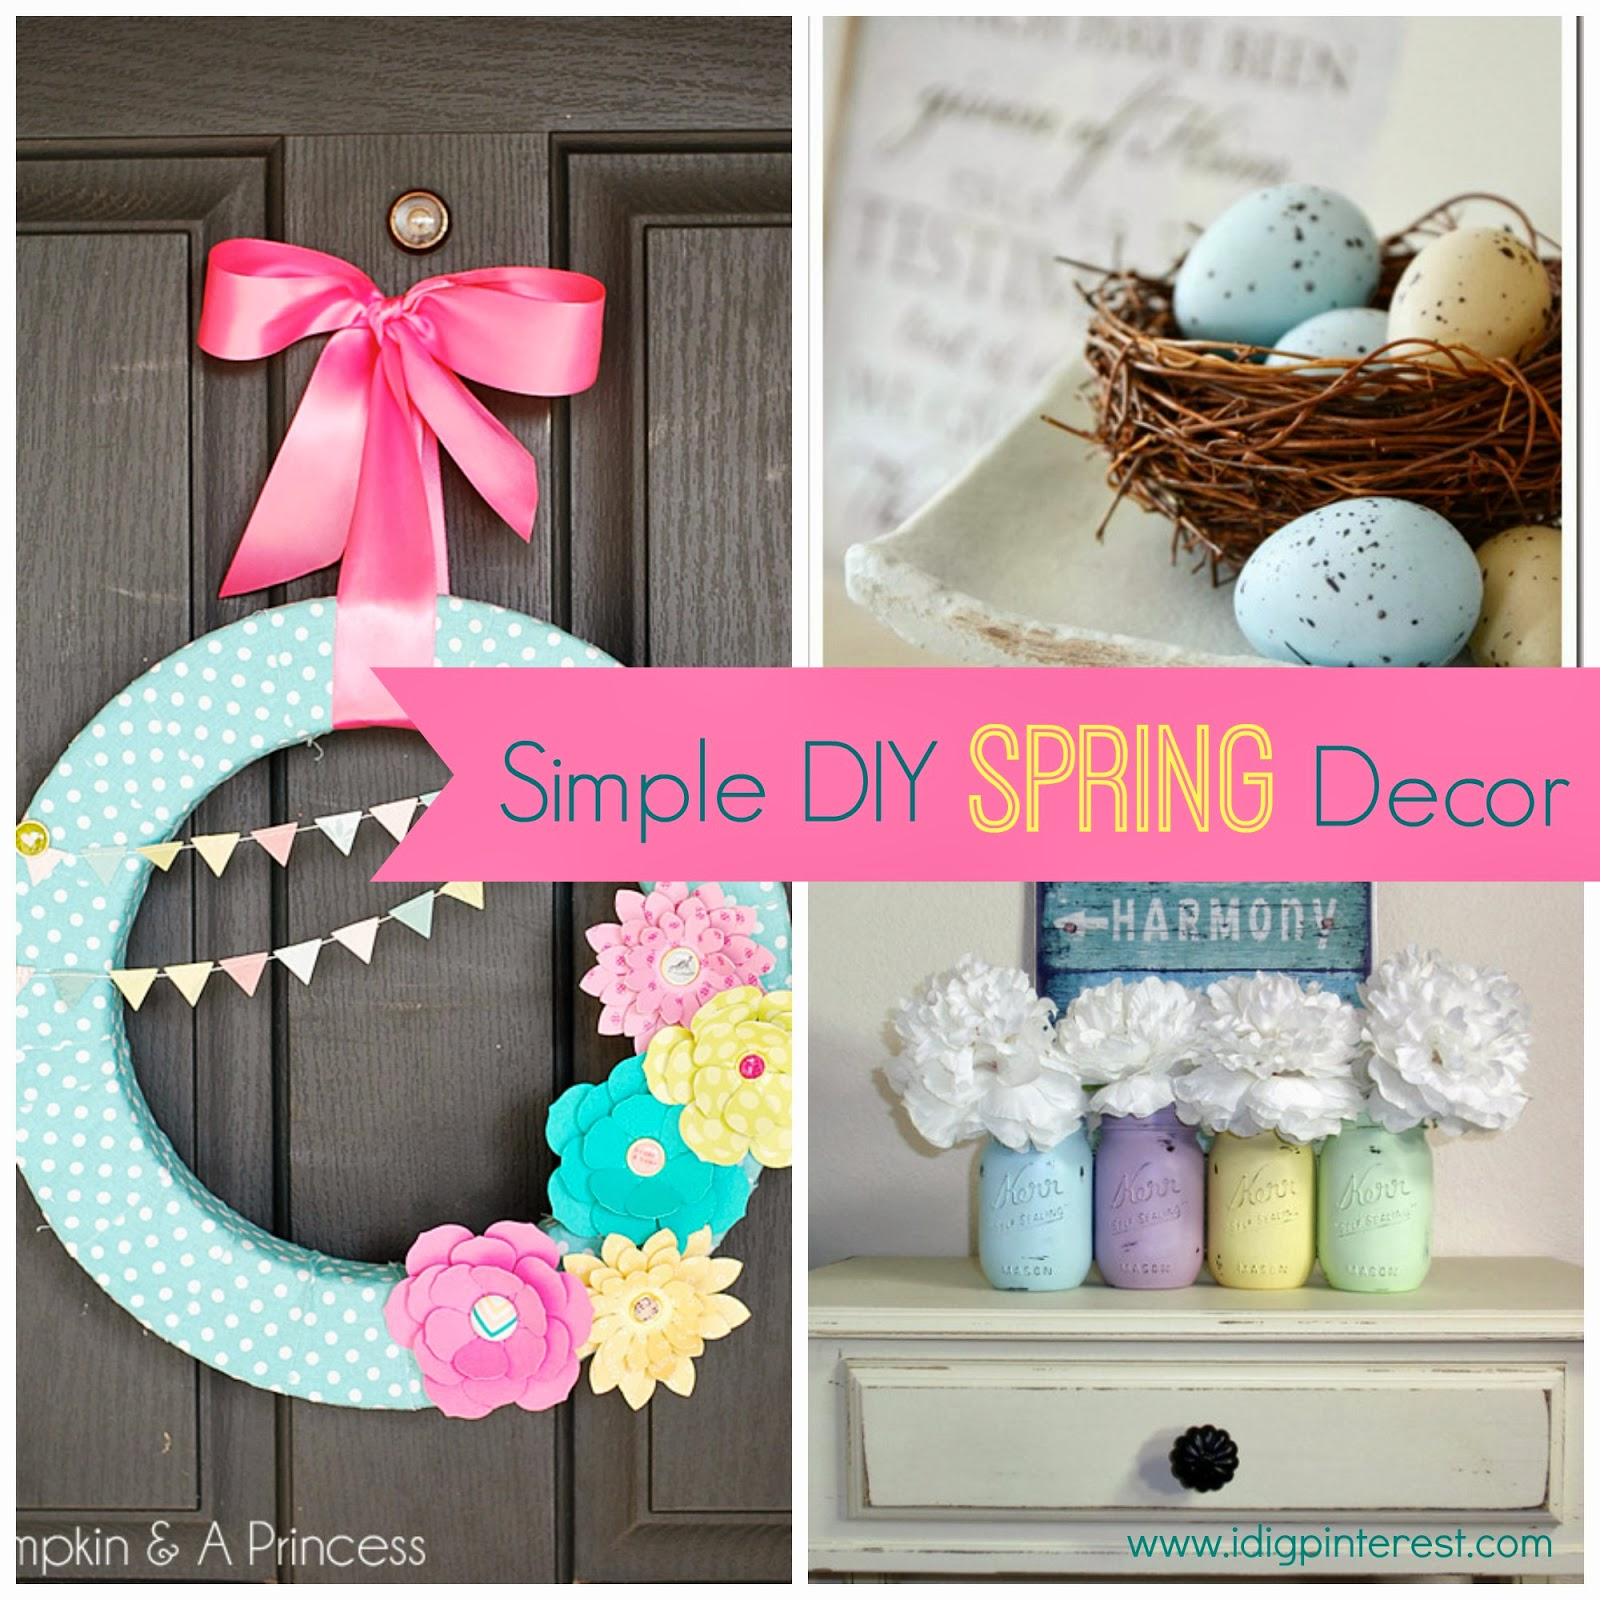 Simple diy spring decor ideas i dig pinterest Home design ideas diy